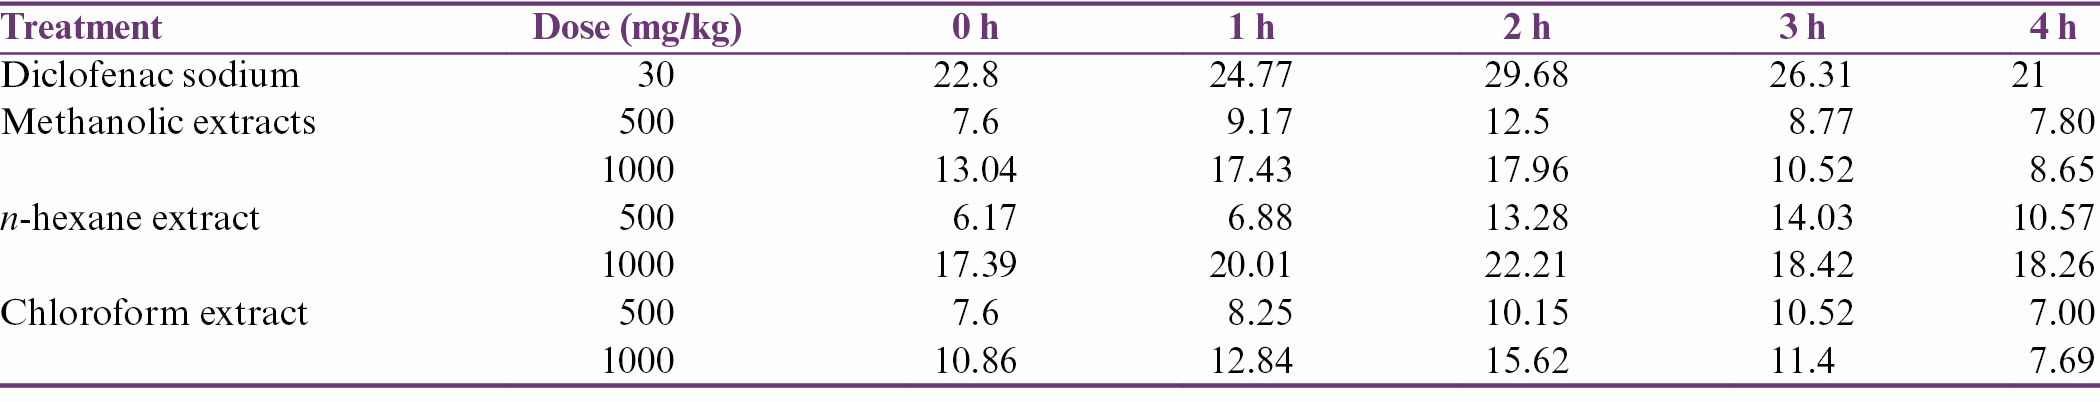 Table 1: Percentage inhibition of paw edema at dose of 500 and 1000 mg/kg